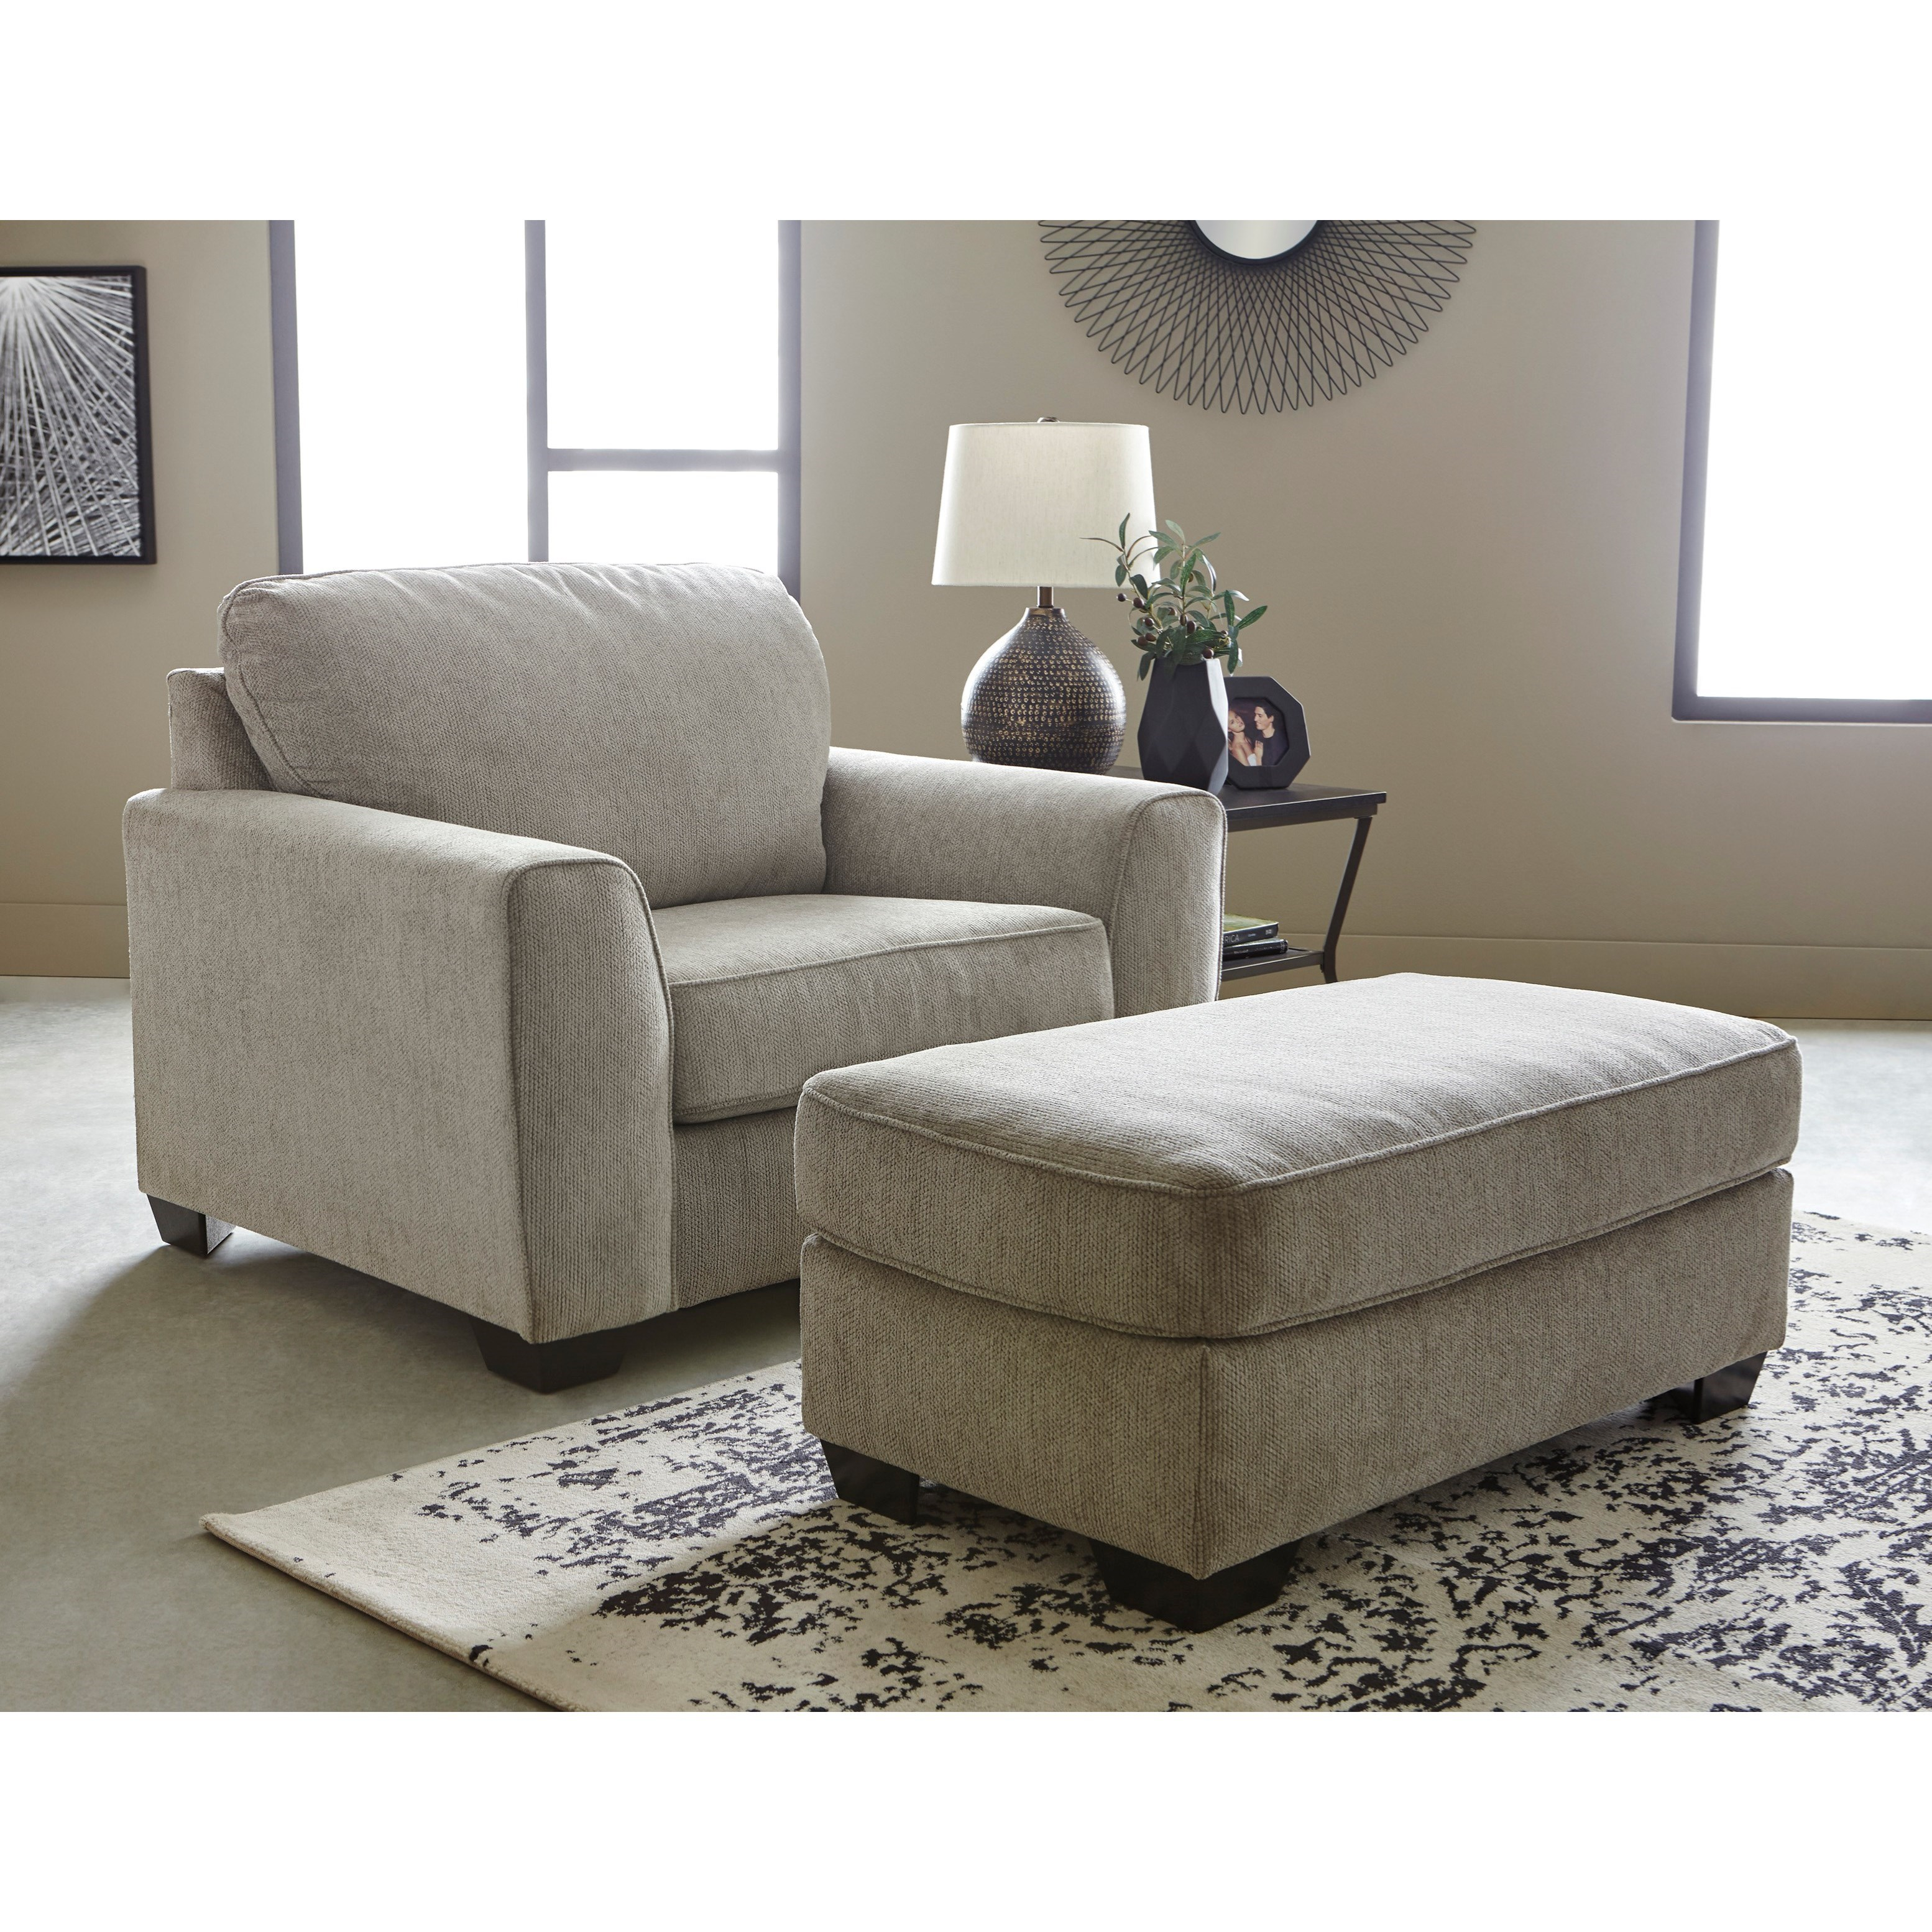 Ashley Furniture Goldsboro Nc: Benchcraft Parlston 7890223 Contemporary Chair And A Half